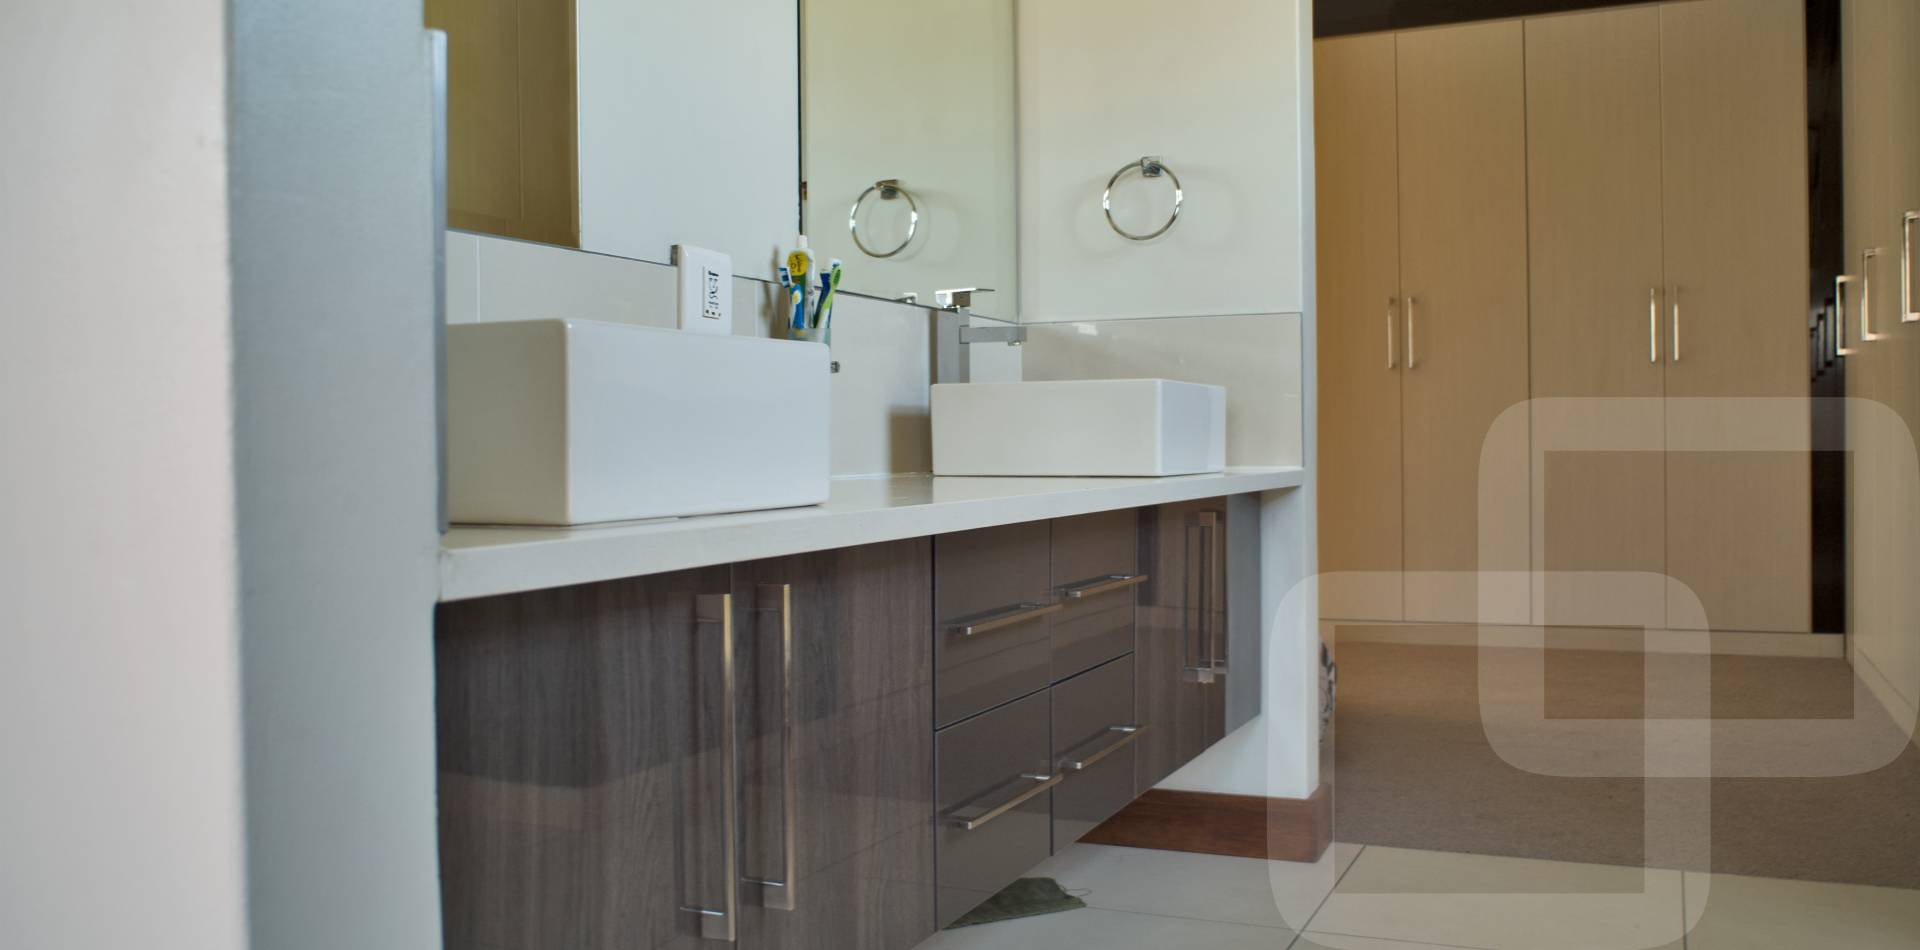 Kitchen designs affordable designer kitchens kitchen for Bathroom designs gauteng